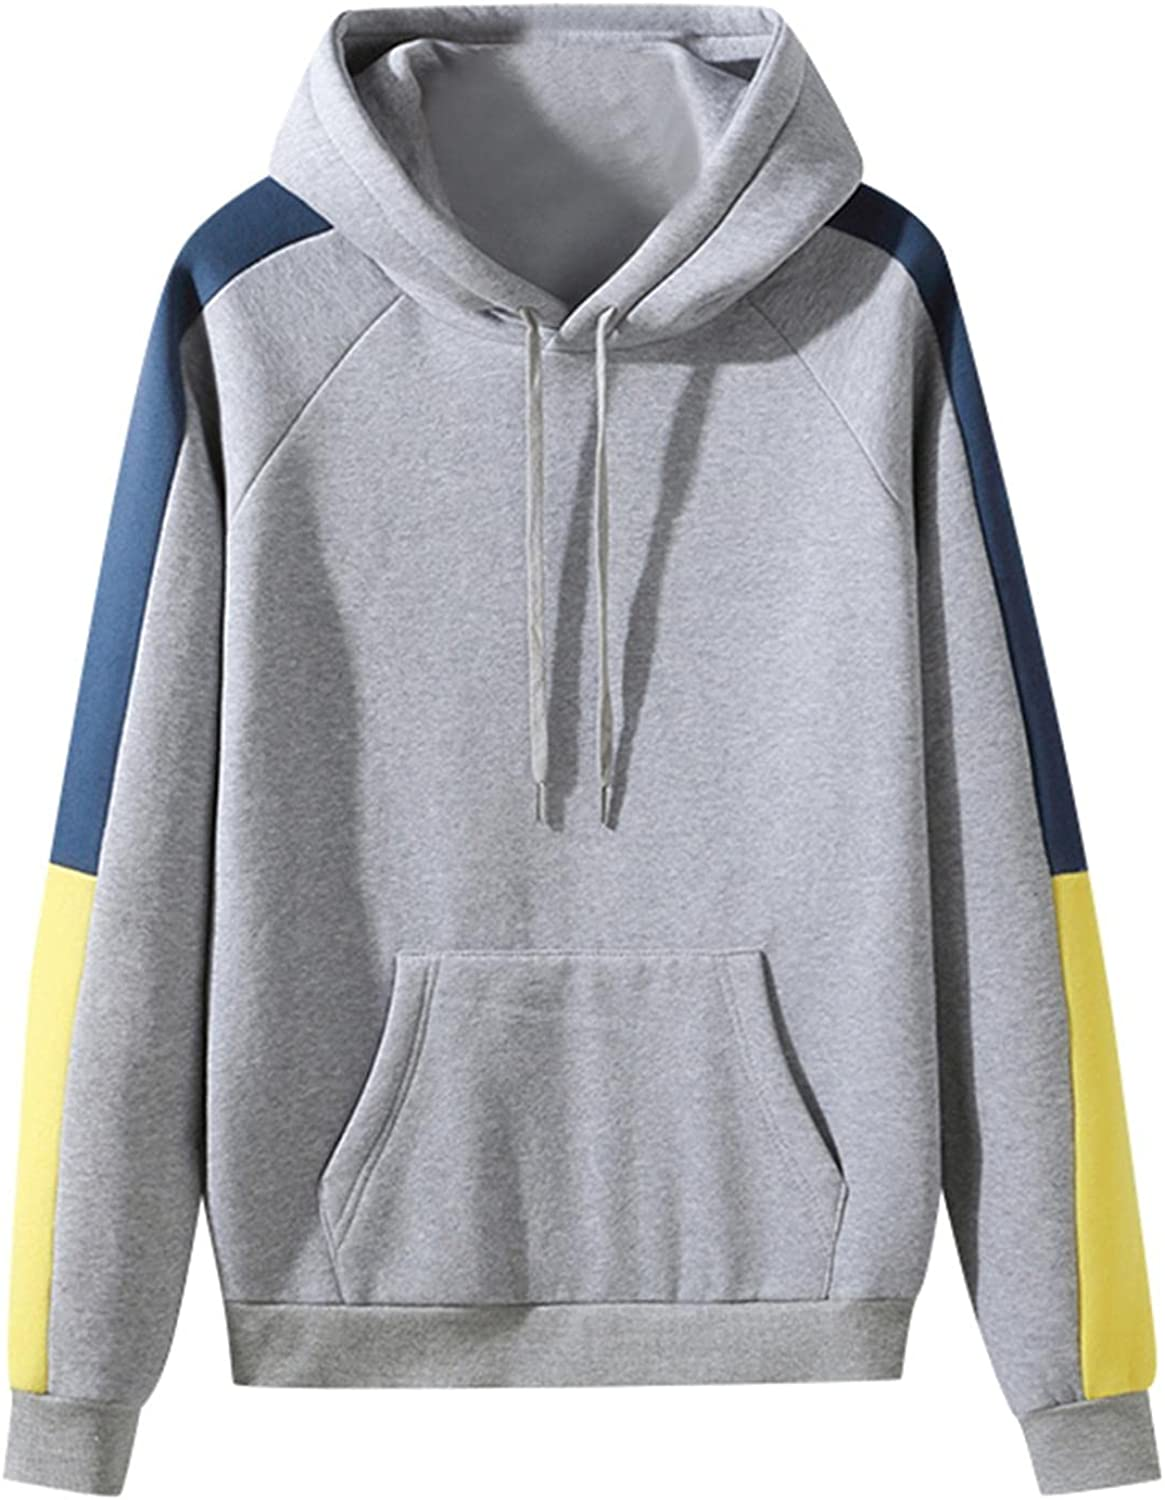 Men's Hoodie Stitching Color Athletic Sweatshirt Long Sleeve Drawstring Workout Pullover Tops Gym Hooded with Pockets